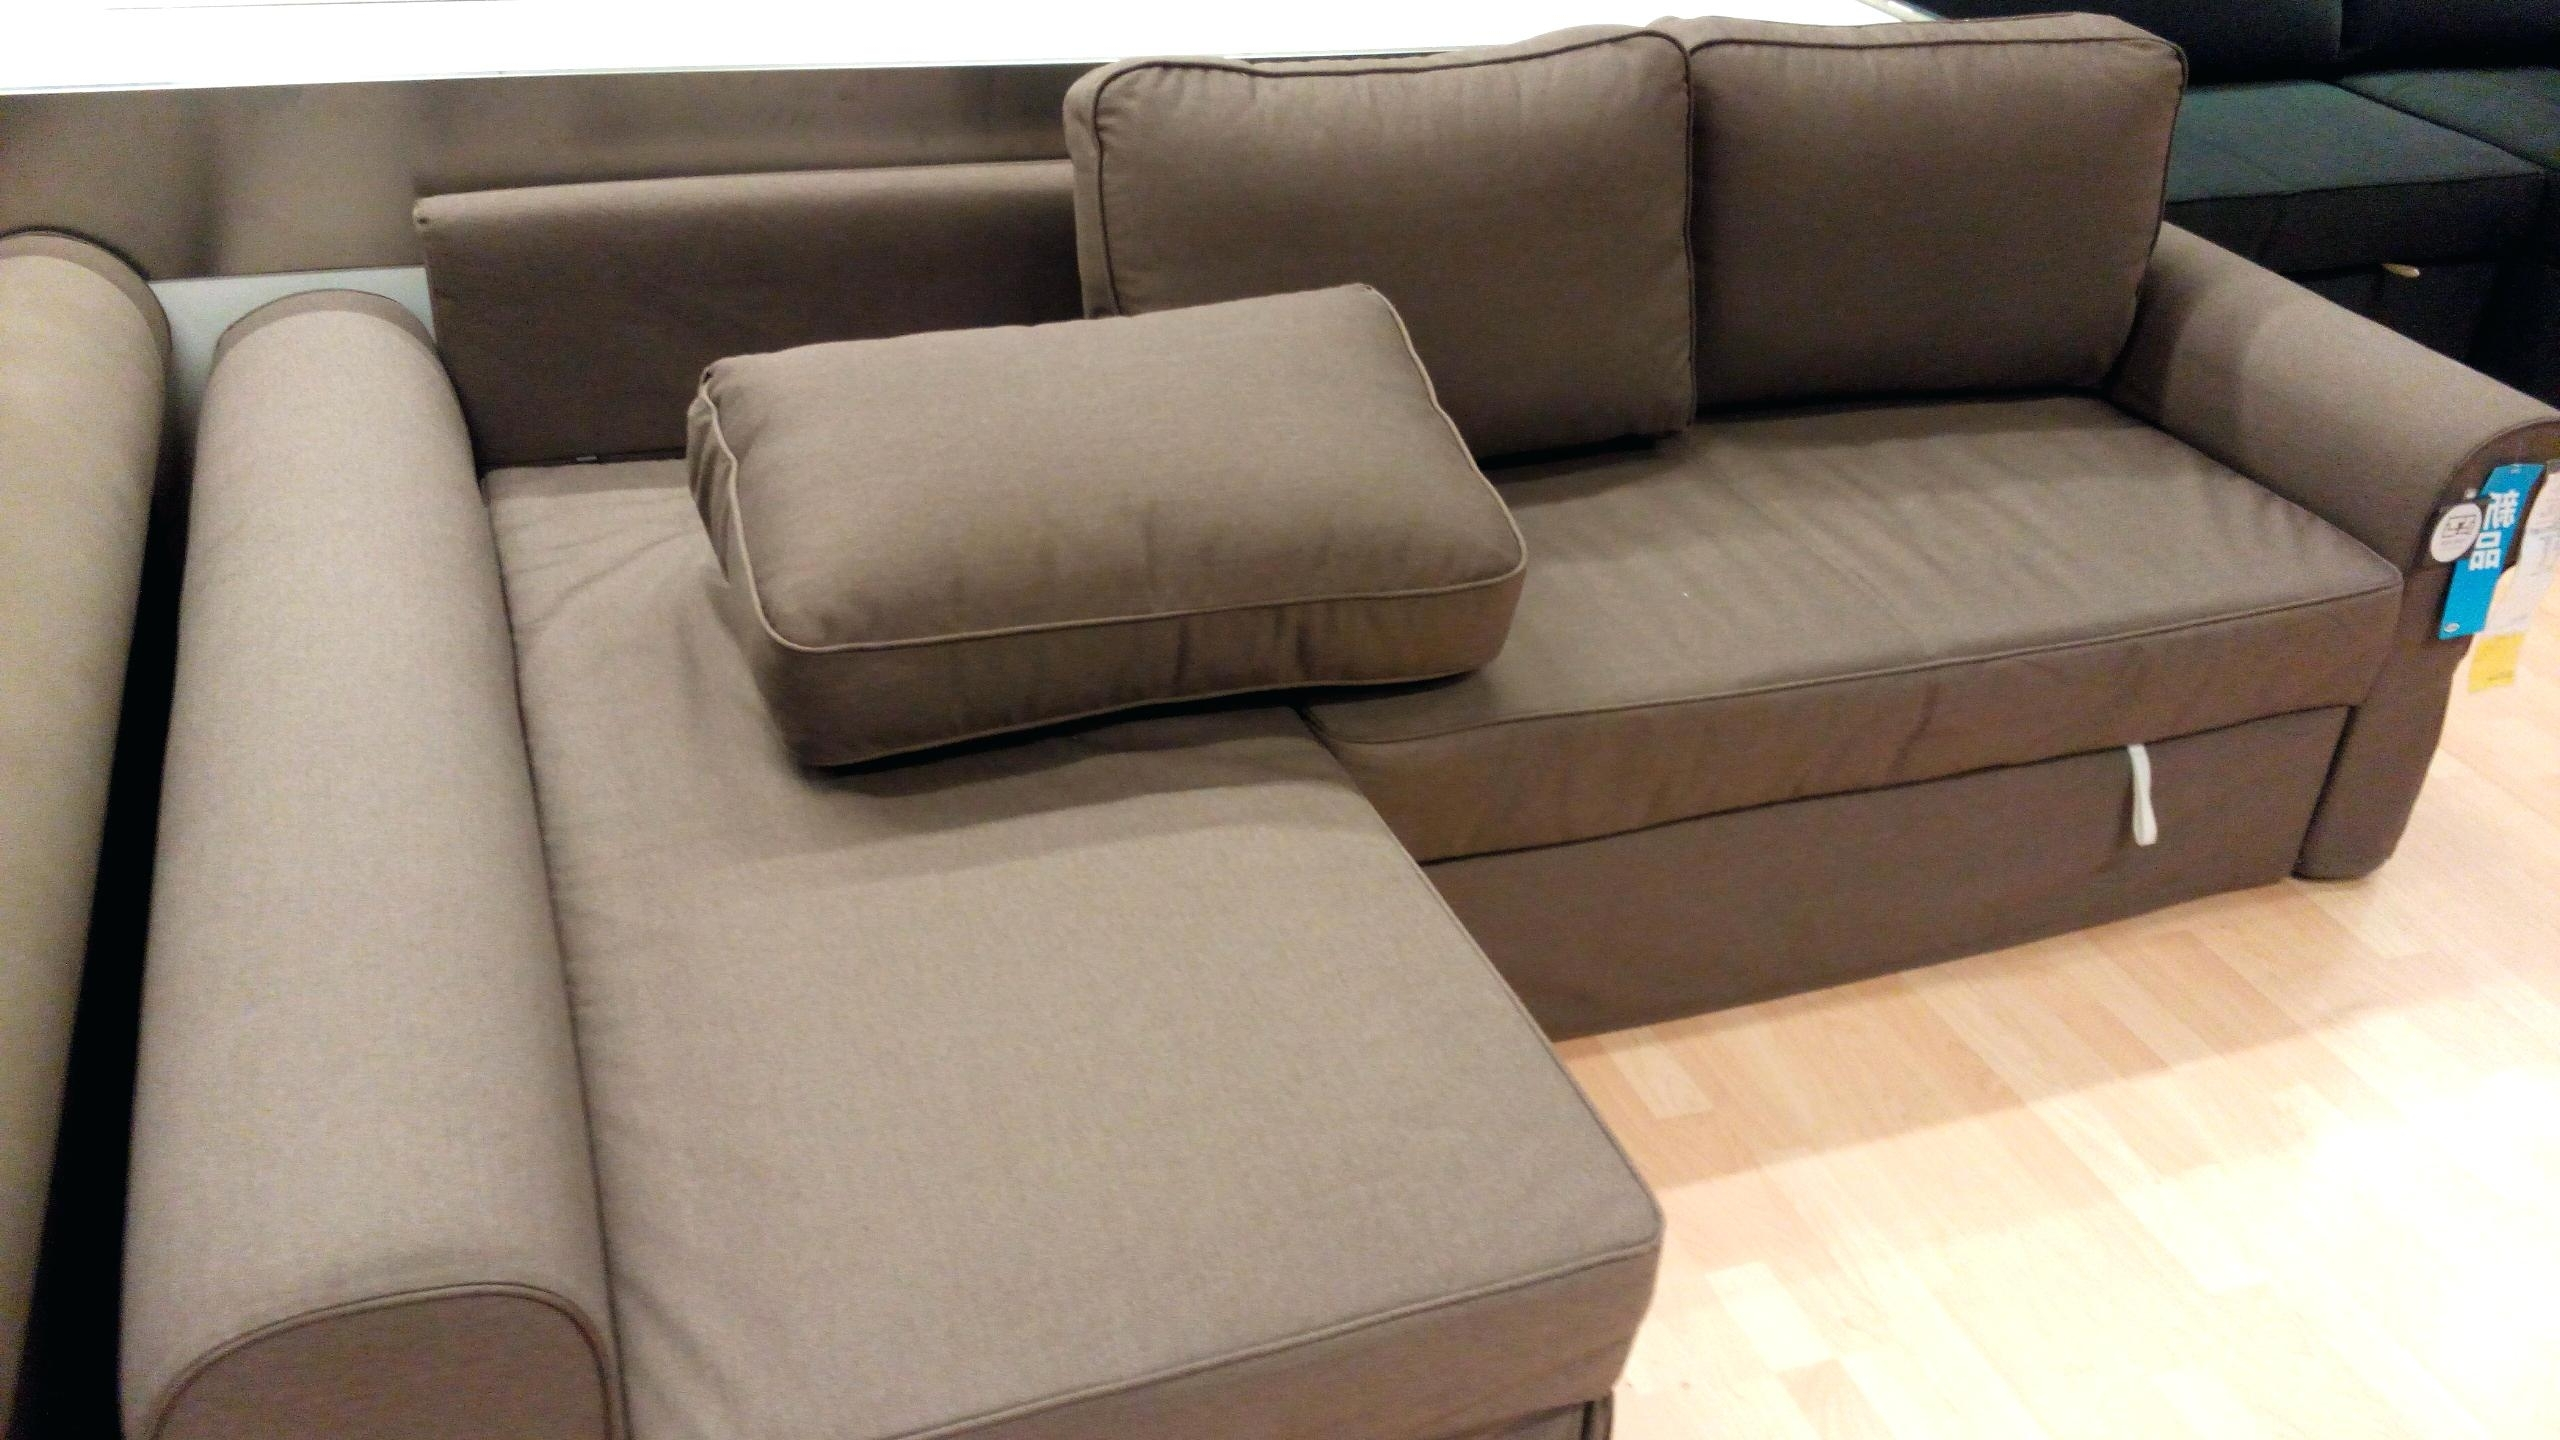 Russ Sofa Beds With Chaise Regarding Popular Russ Sofa Bed With Chaise – Mariaalcocer (View 9 of 15)